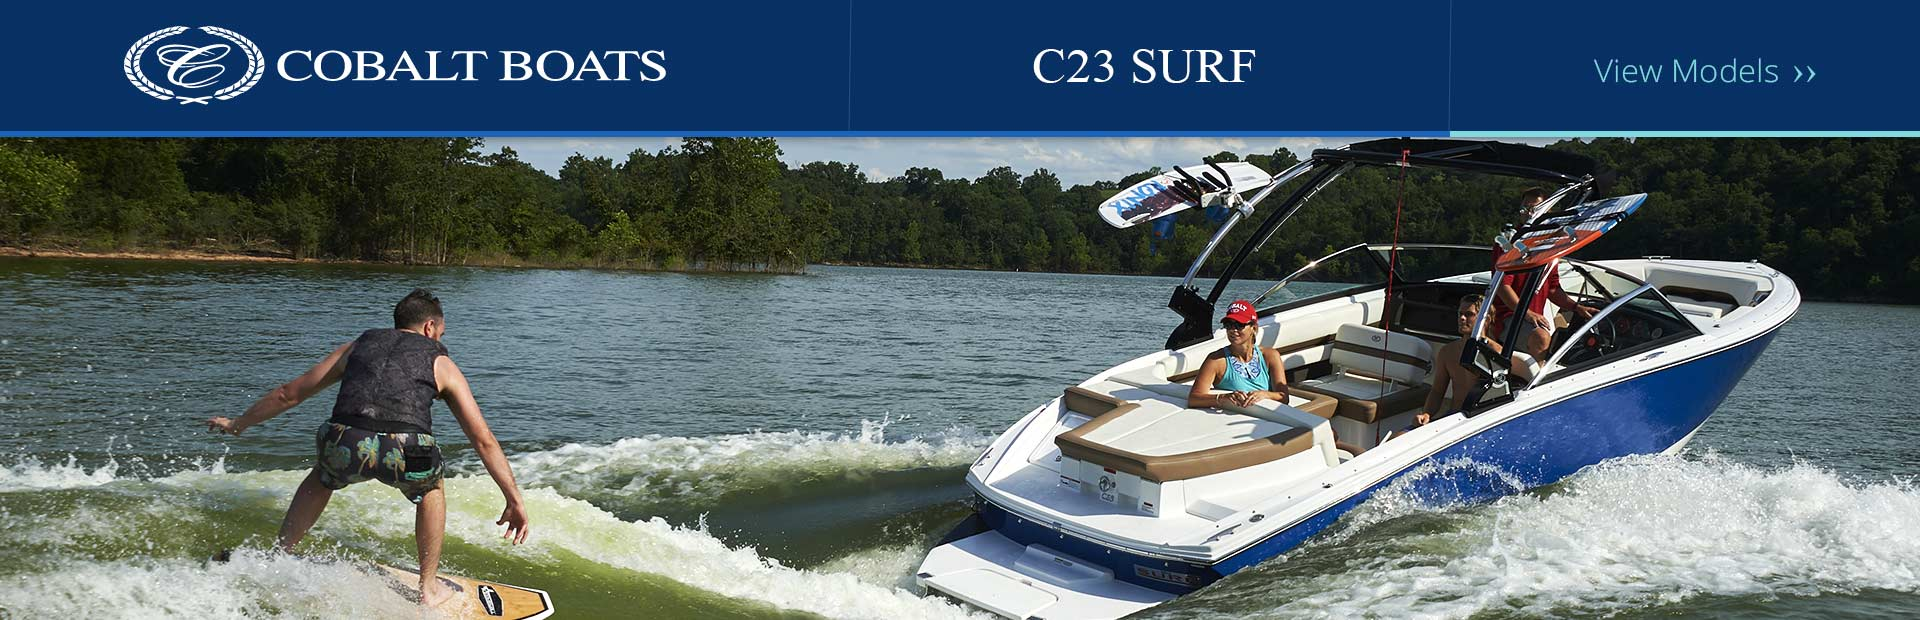 Cobalt C23 Surf: Click here to view the models.